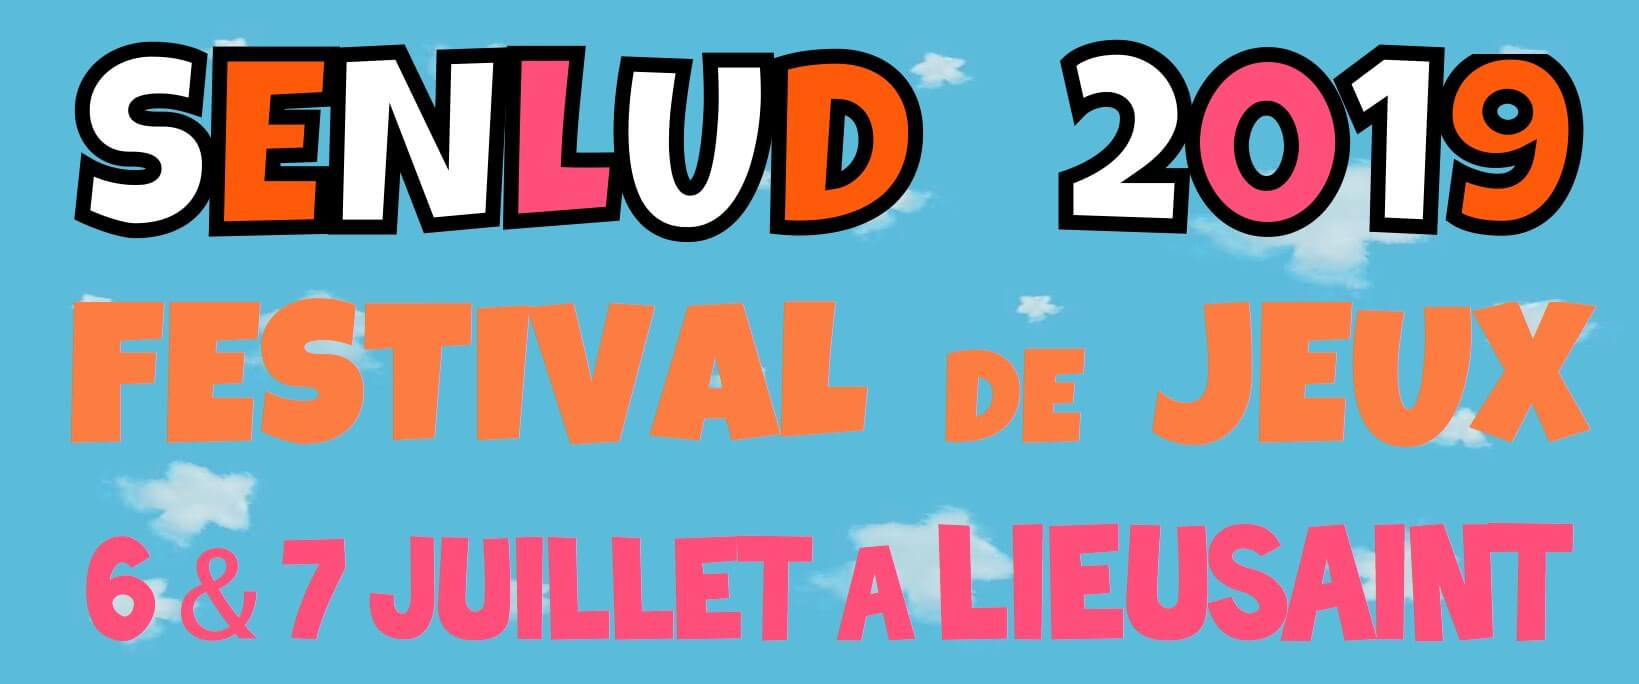 Affiche officielle Senlud 2020